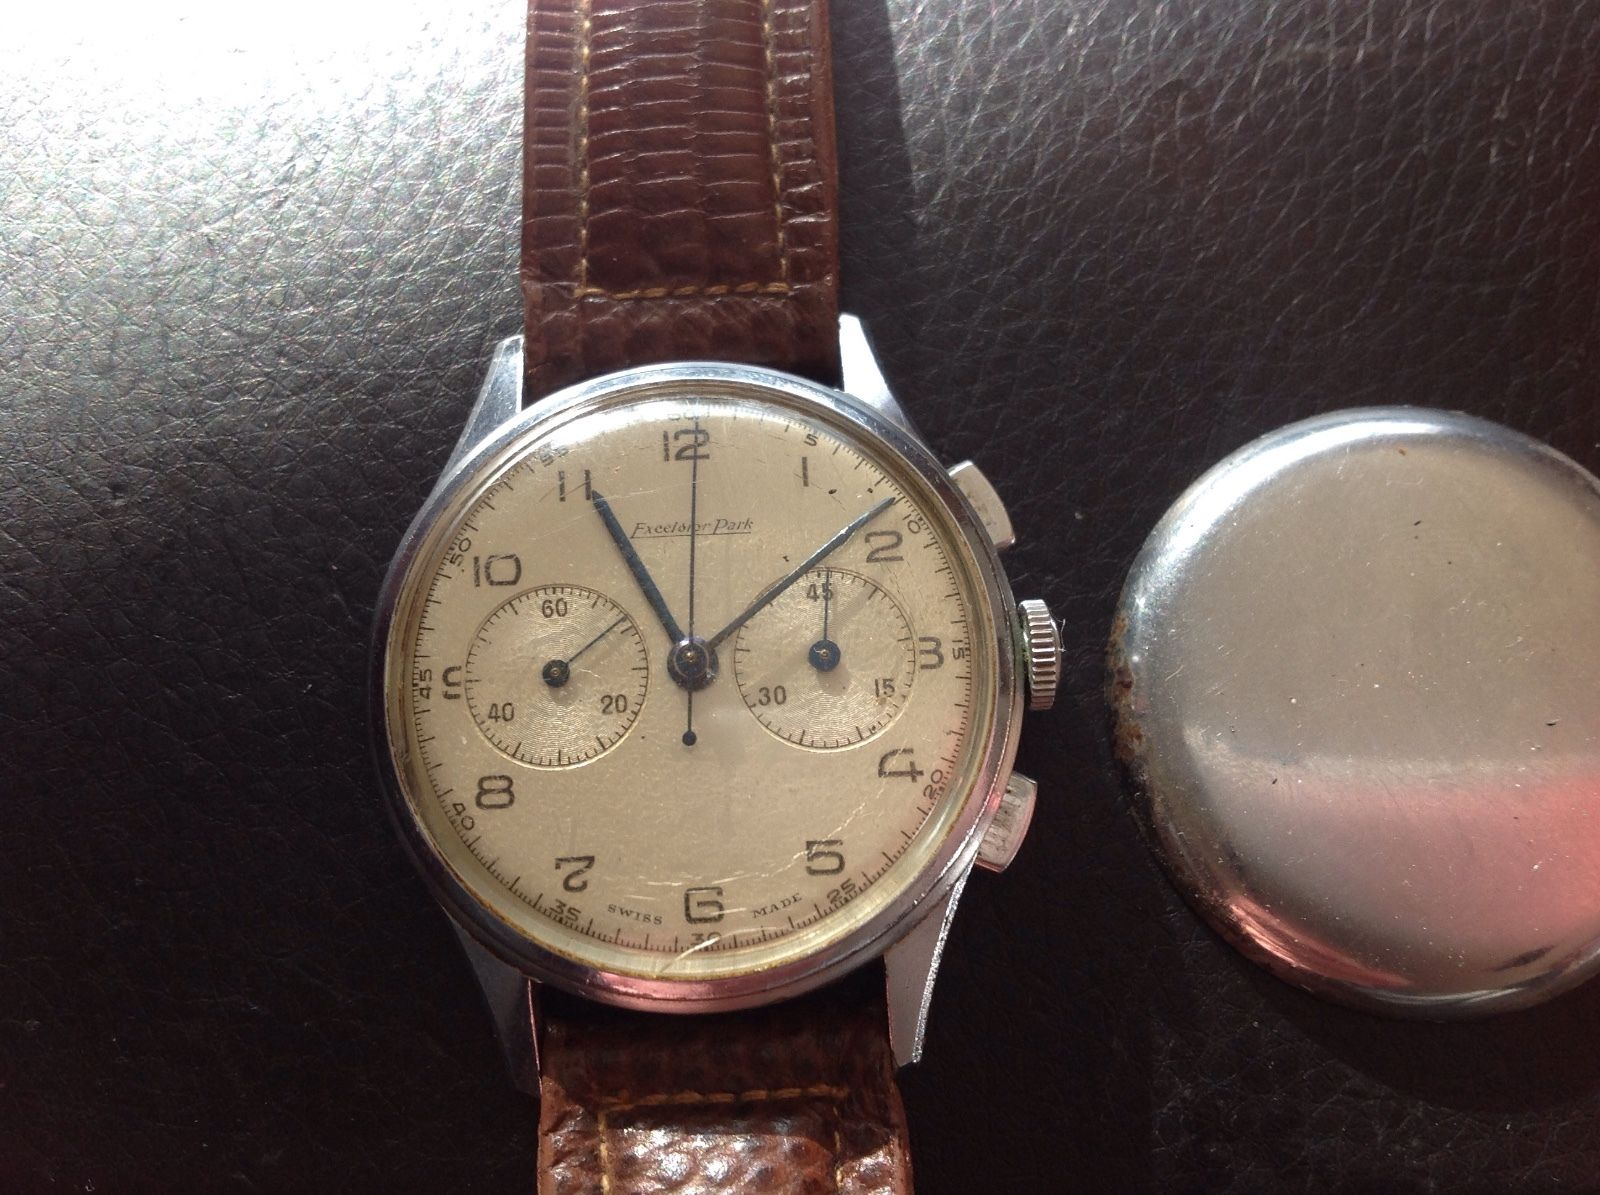 The dial is showing a bit of wear, but seems clean overall. Photo courtesy of FS listing on eBay, click through for full details.